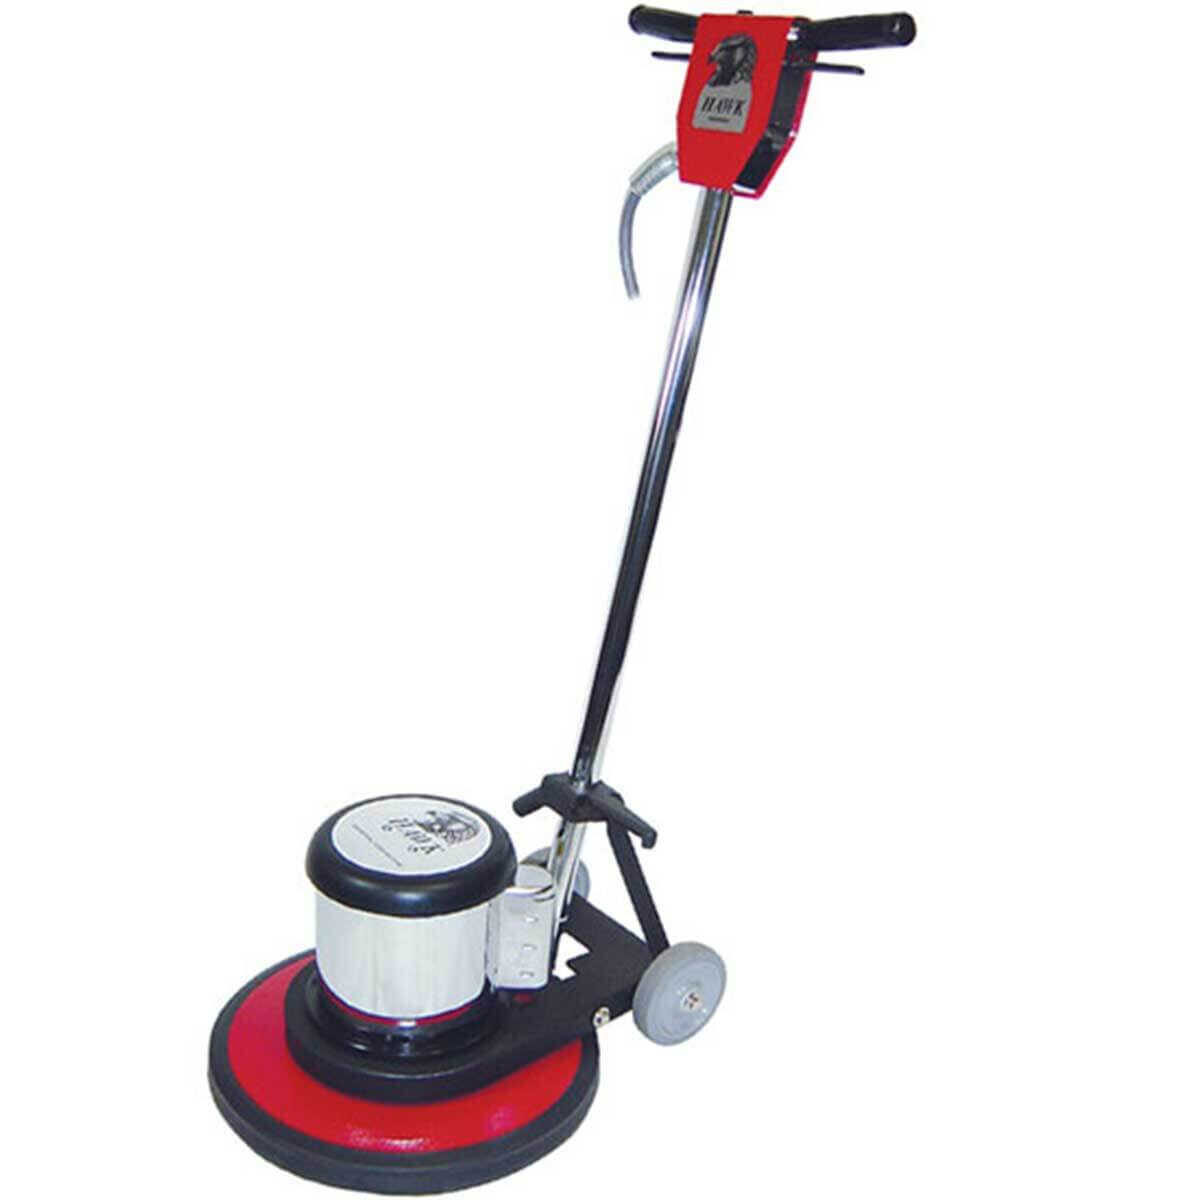 Hawk 1-1/2 Hp Floor Machine